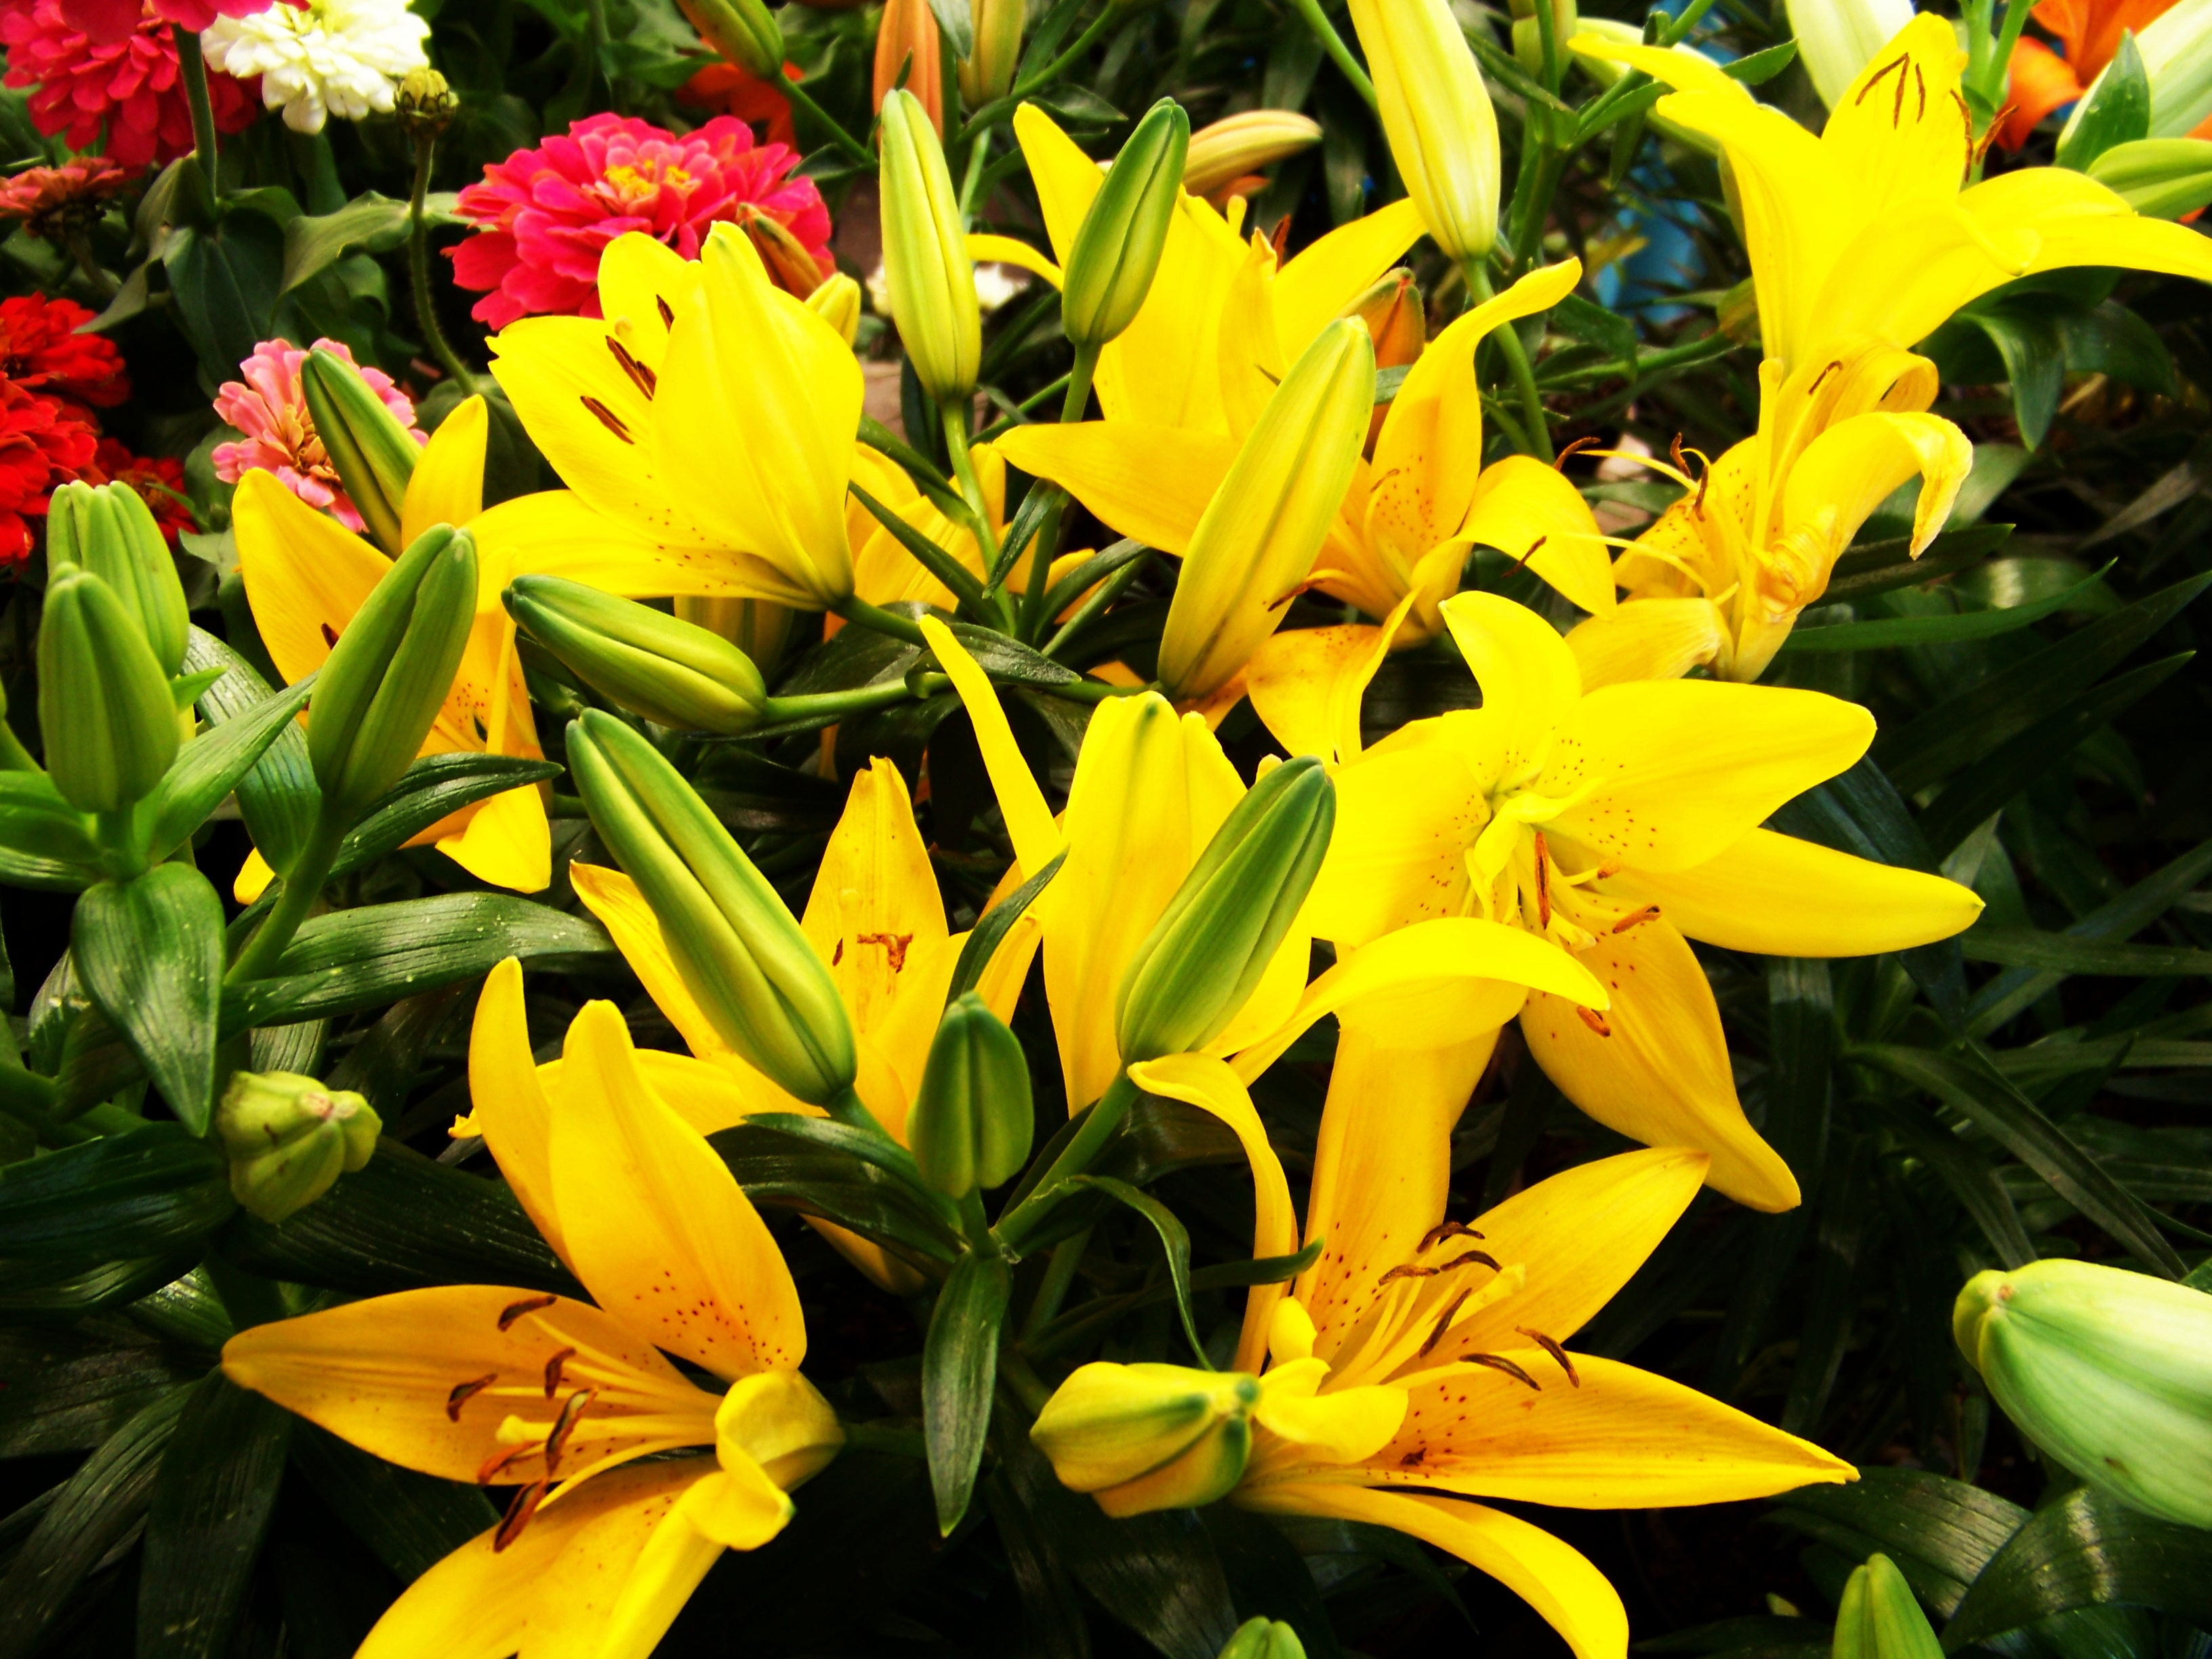 Yellow flowers, Agriculture, Season, Natural, Nature, HQ Photo